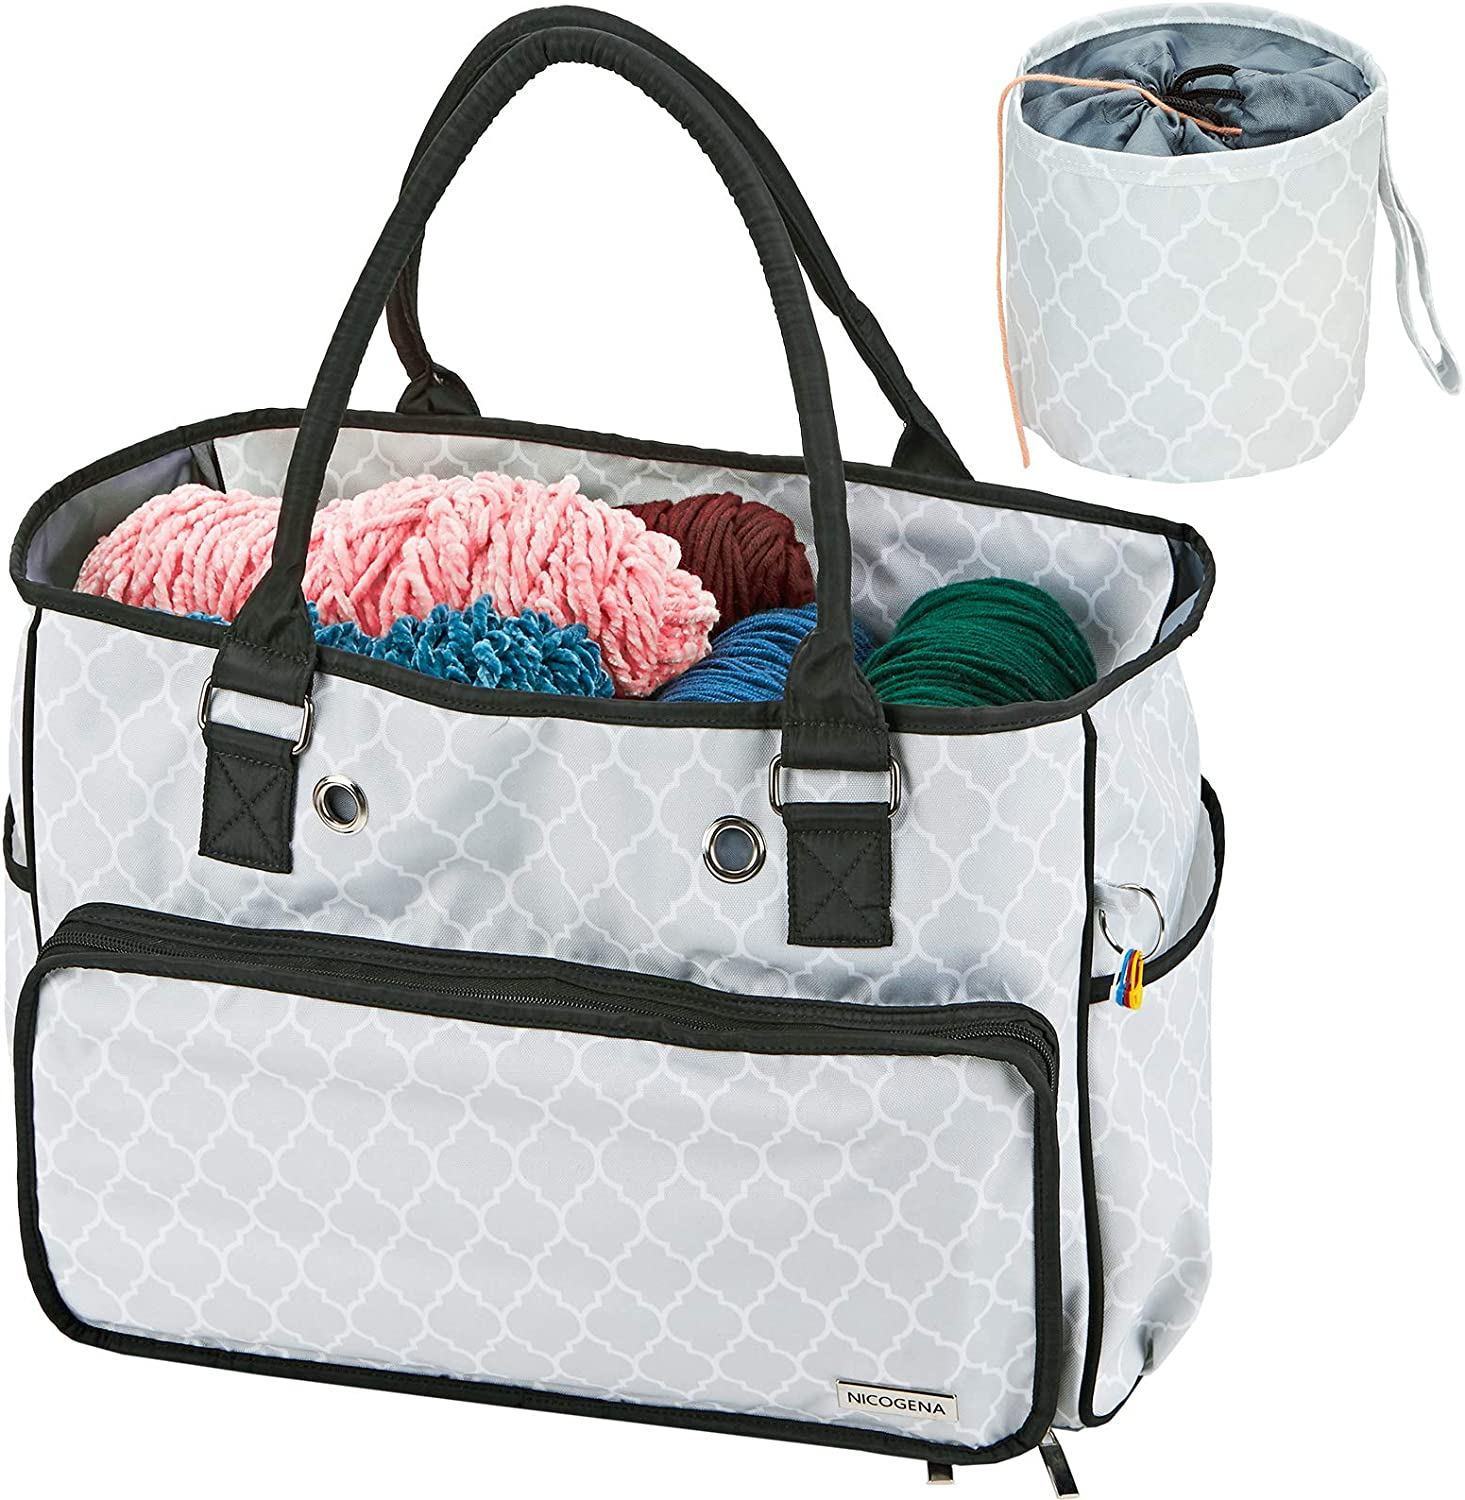 NICOGENA Knitting Bag, Portable Yarn Storage Tote for Yarn Skeins and Accessories Tangle Free with Mini Yarn Drum and 4 Oversized Grommets, Lantern White